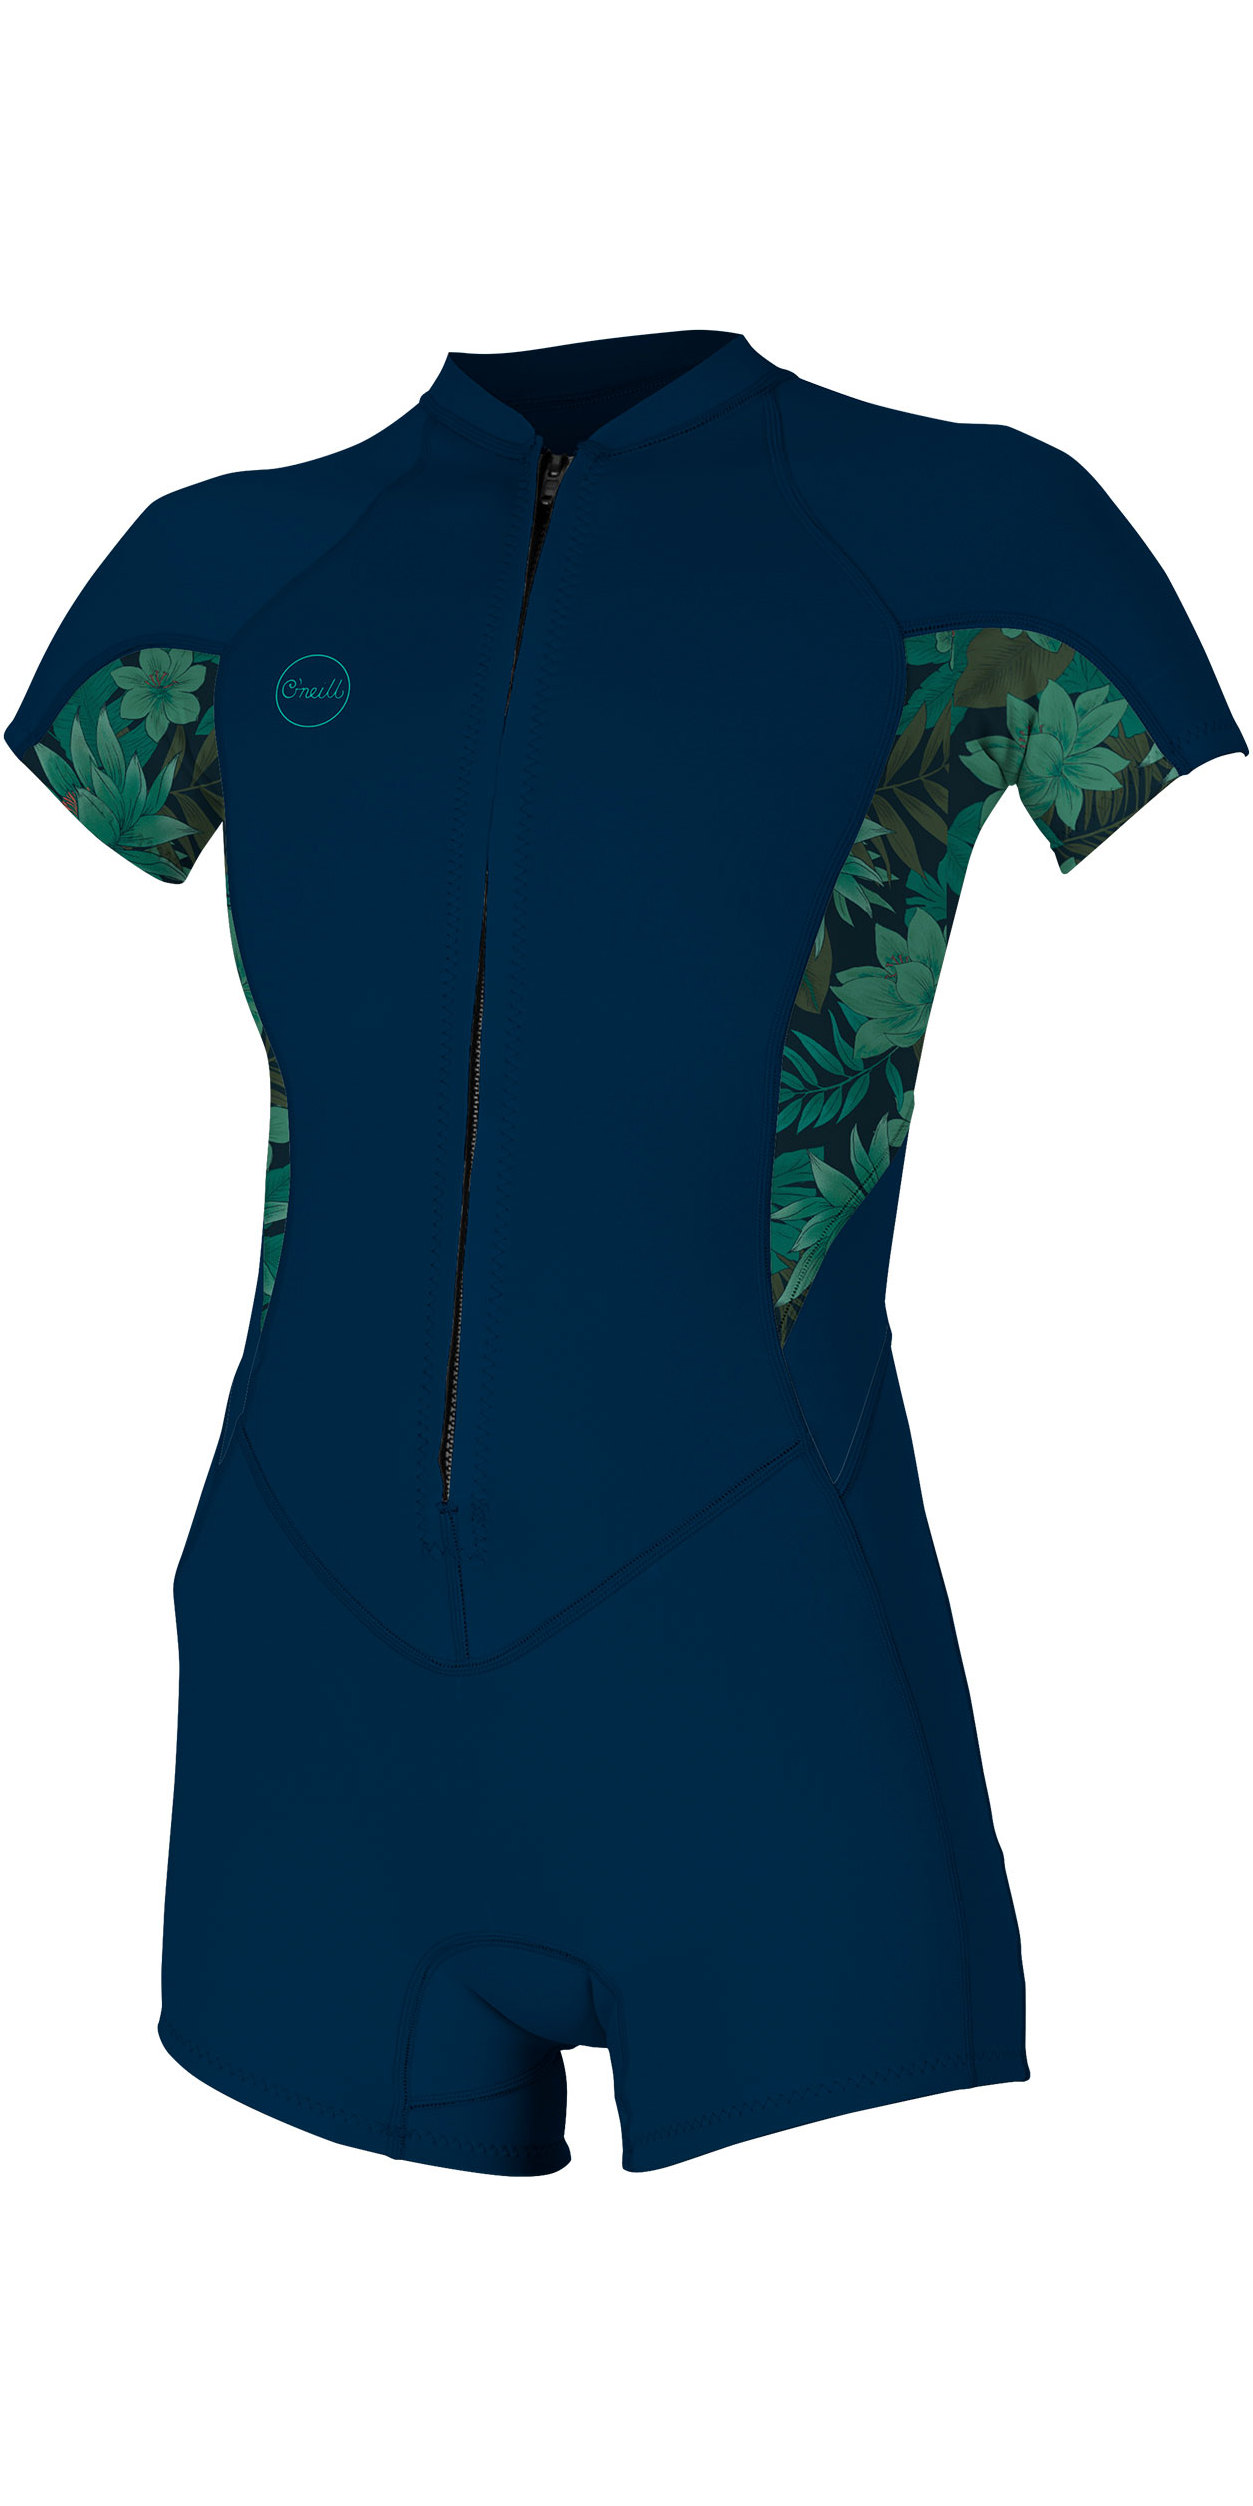 2019 O'Neill Womens Bahia 2/1mm Front Zip Shorty Wetsuit Abyss / Faro 5293